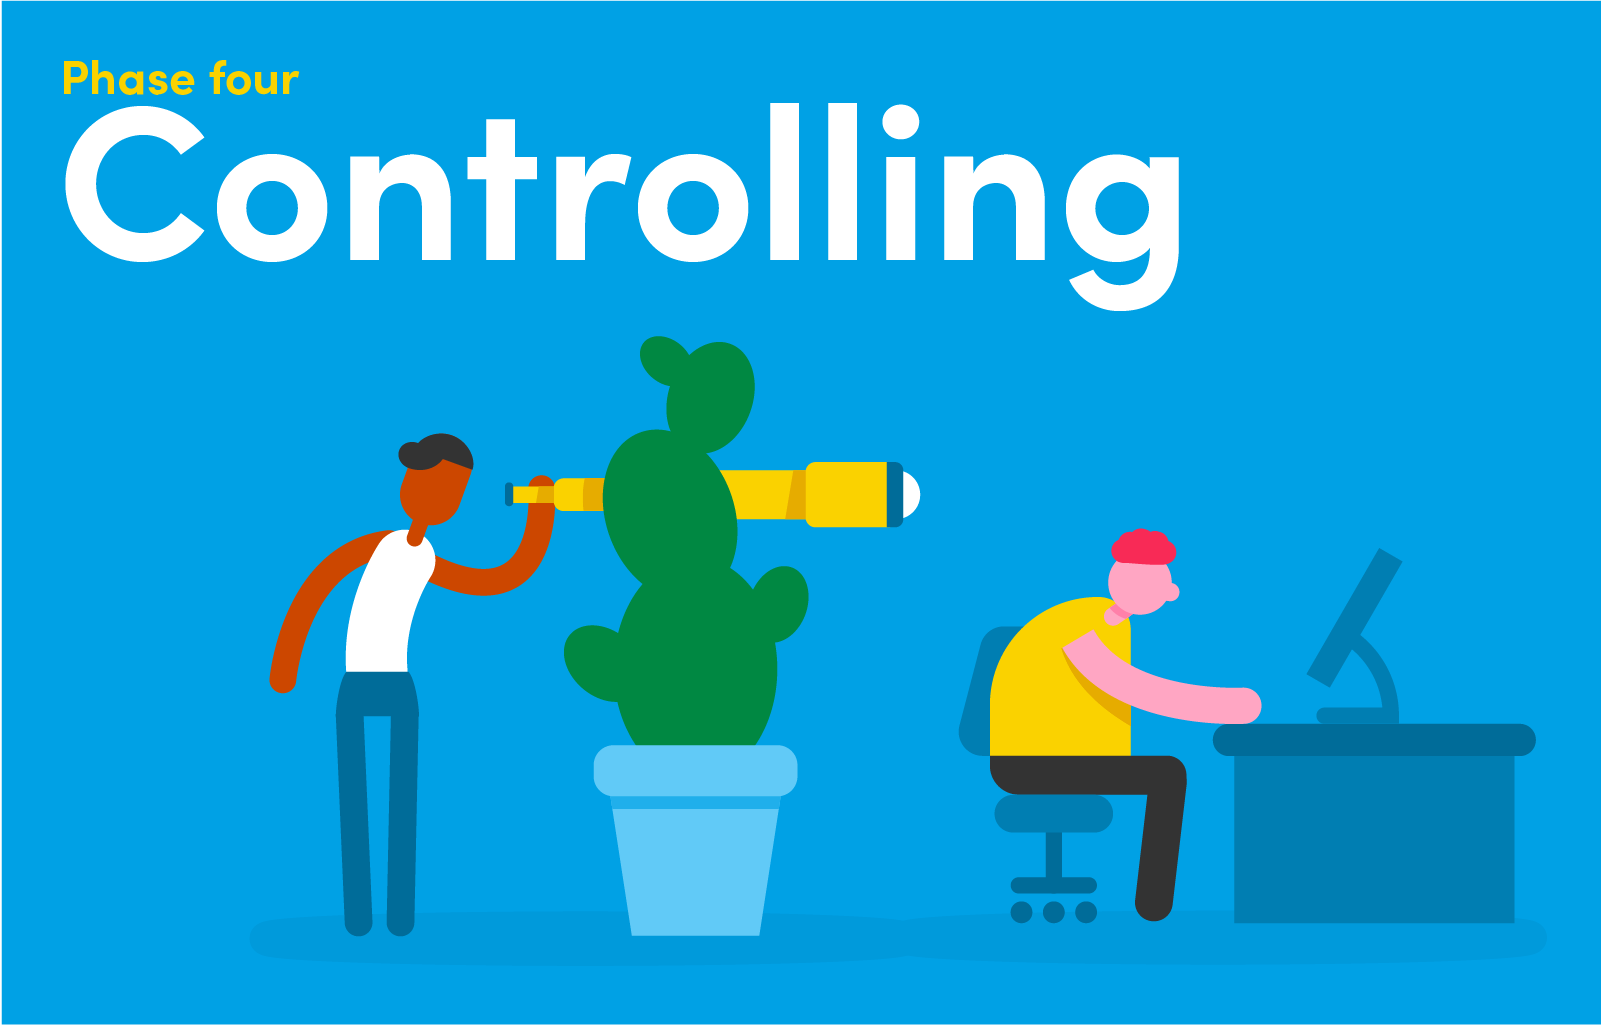 The controlling phase of a project